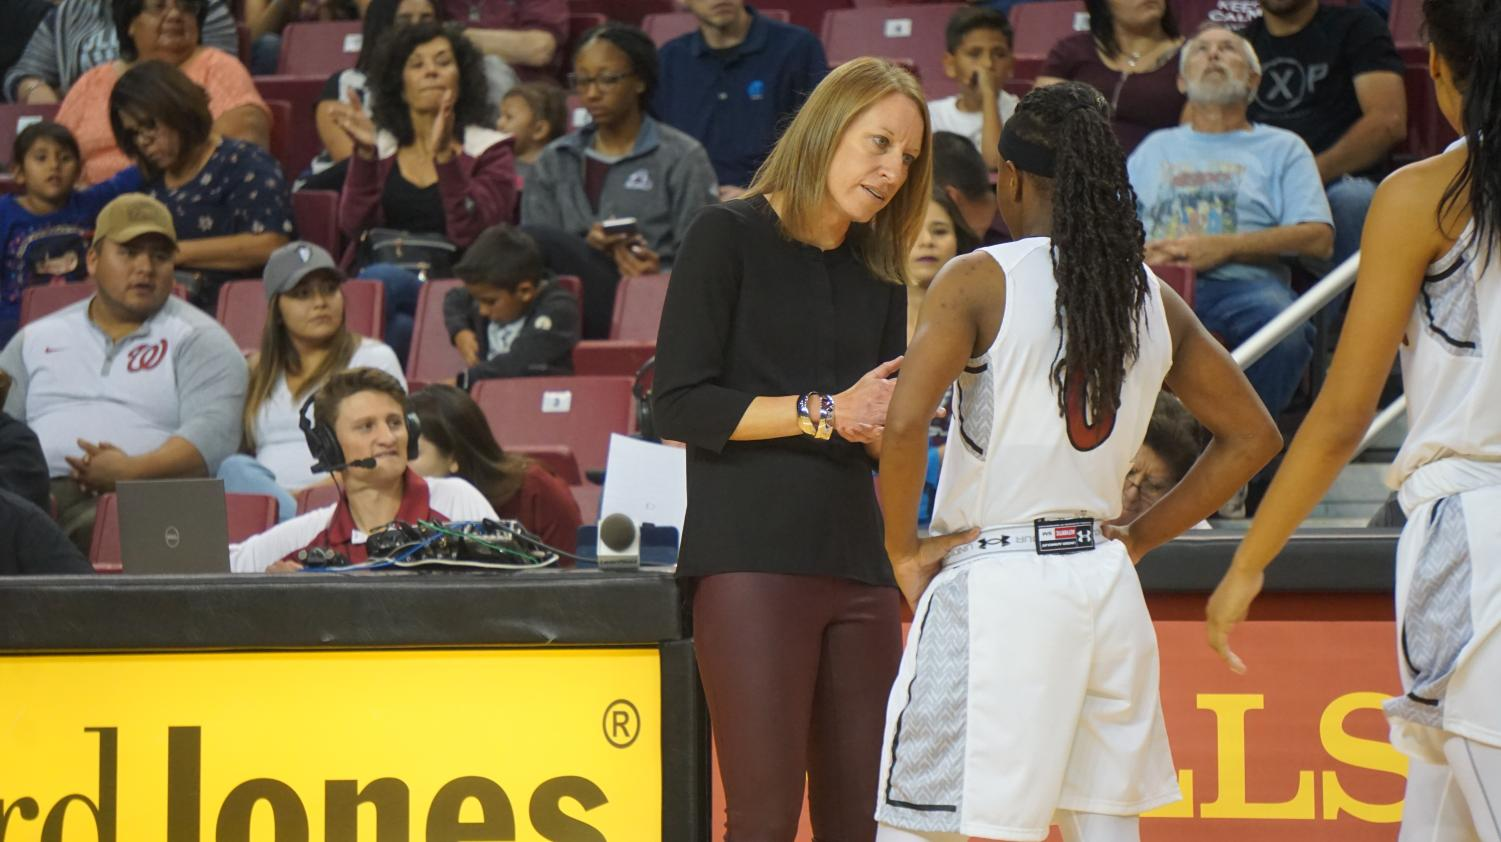 NMSU looks to bring home their fourth straight WAC Tournament Championship for women's basketball in Las Vegas this week.